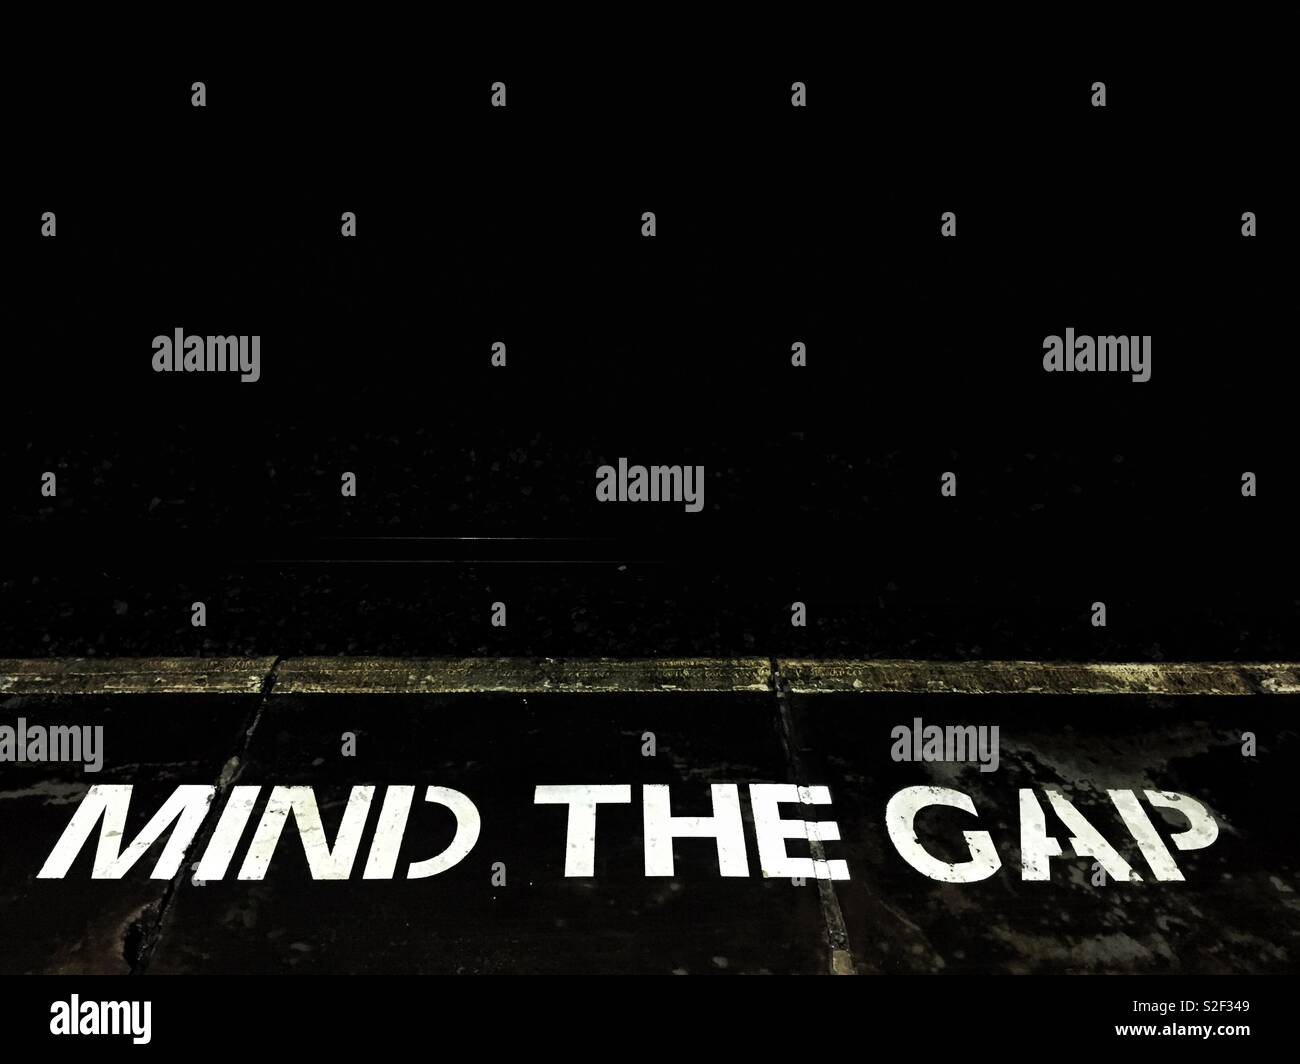 A sign on the floor of a railway station platform warning passengers to mind the gap - Stock Image